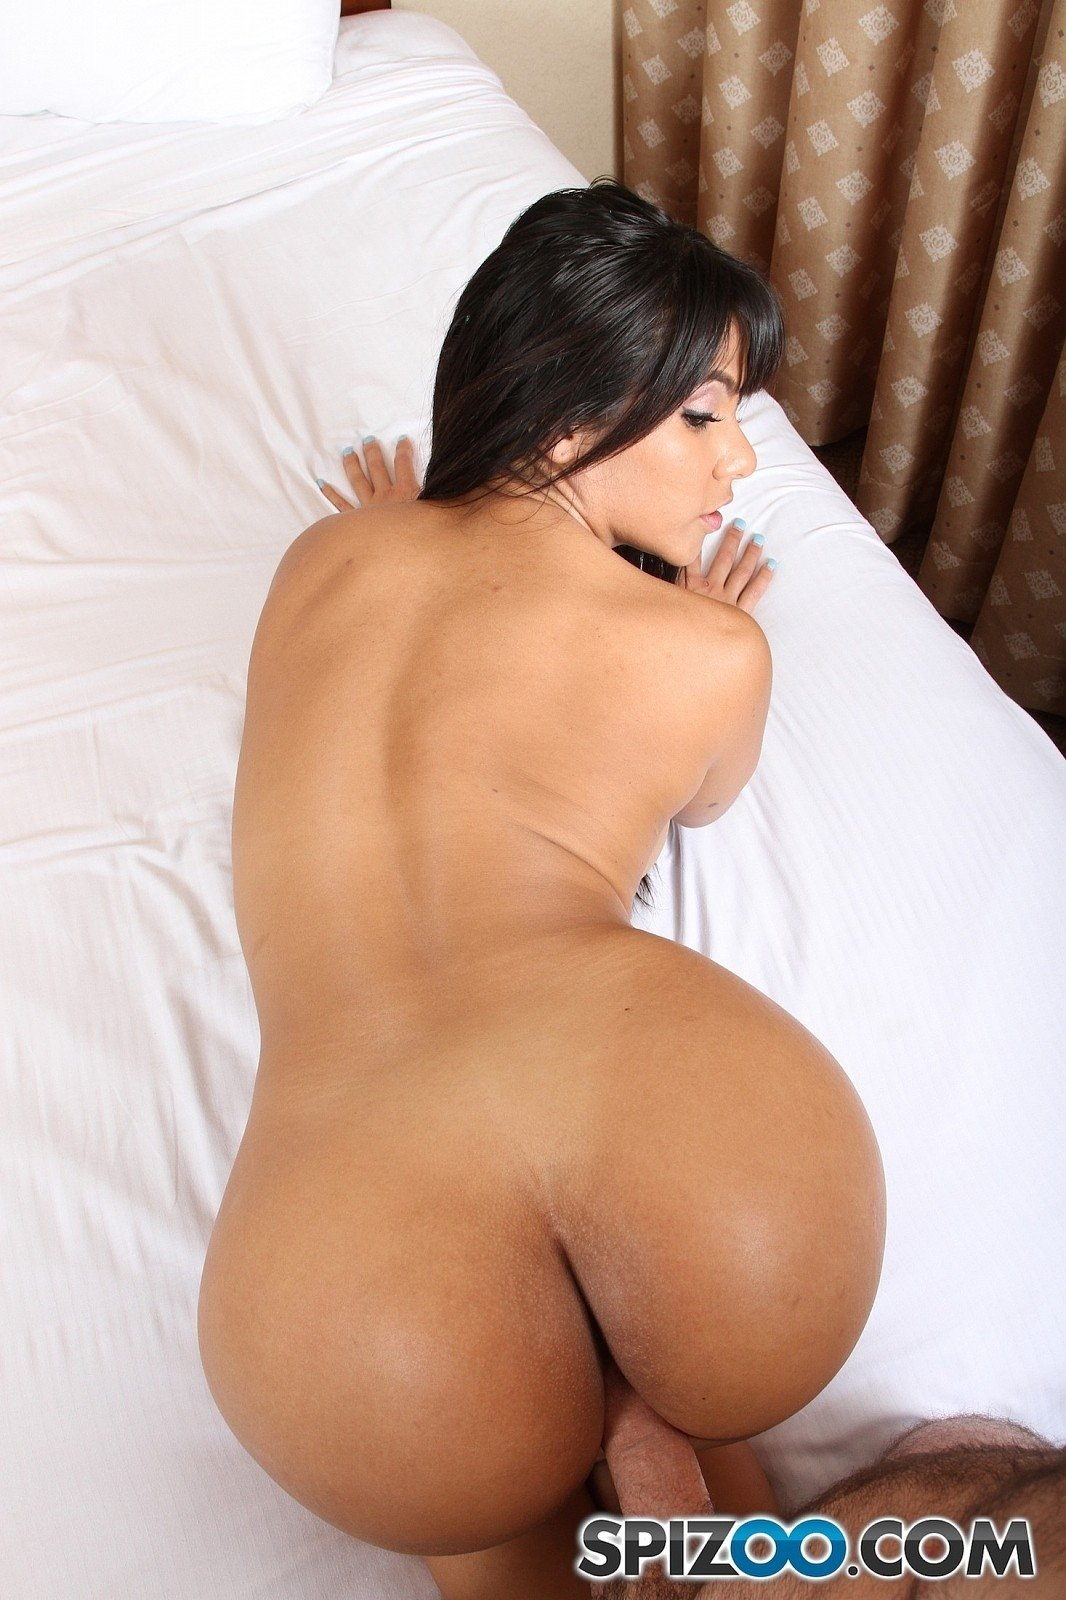 free dl pussy naked star